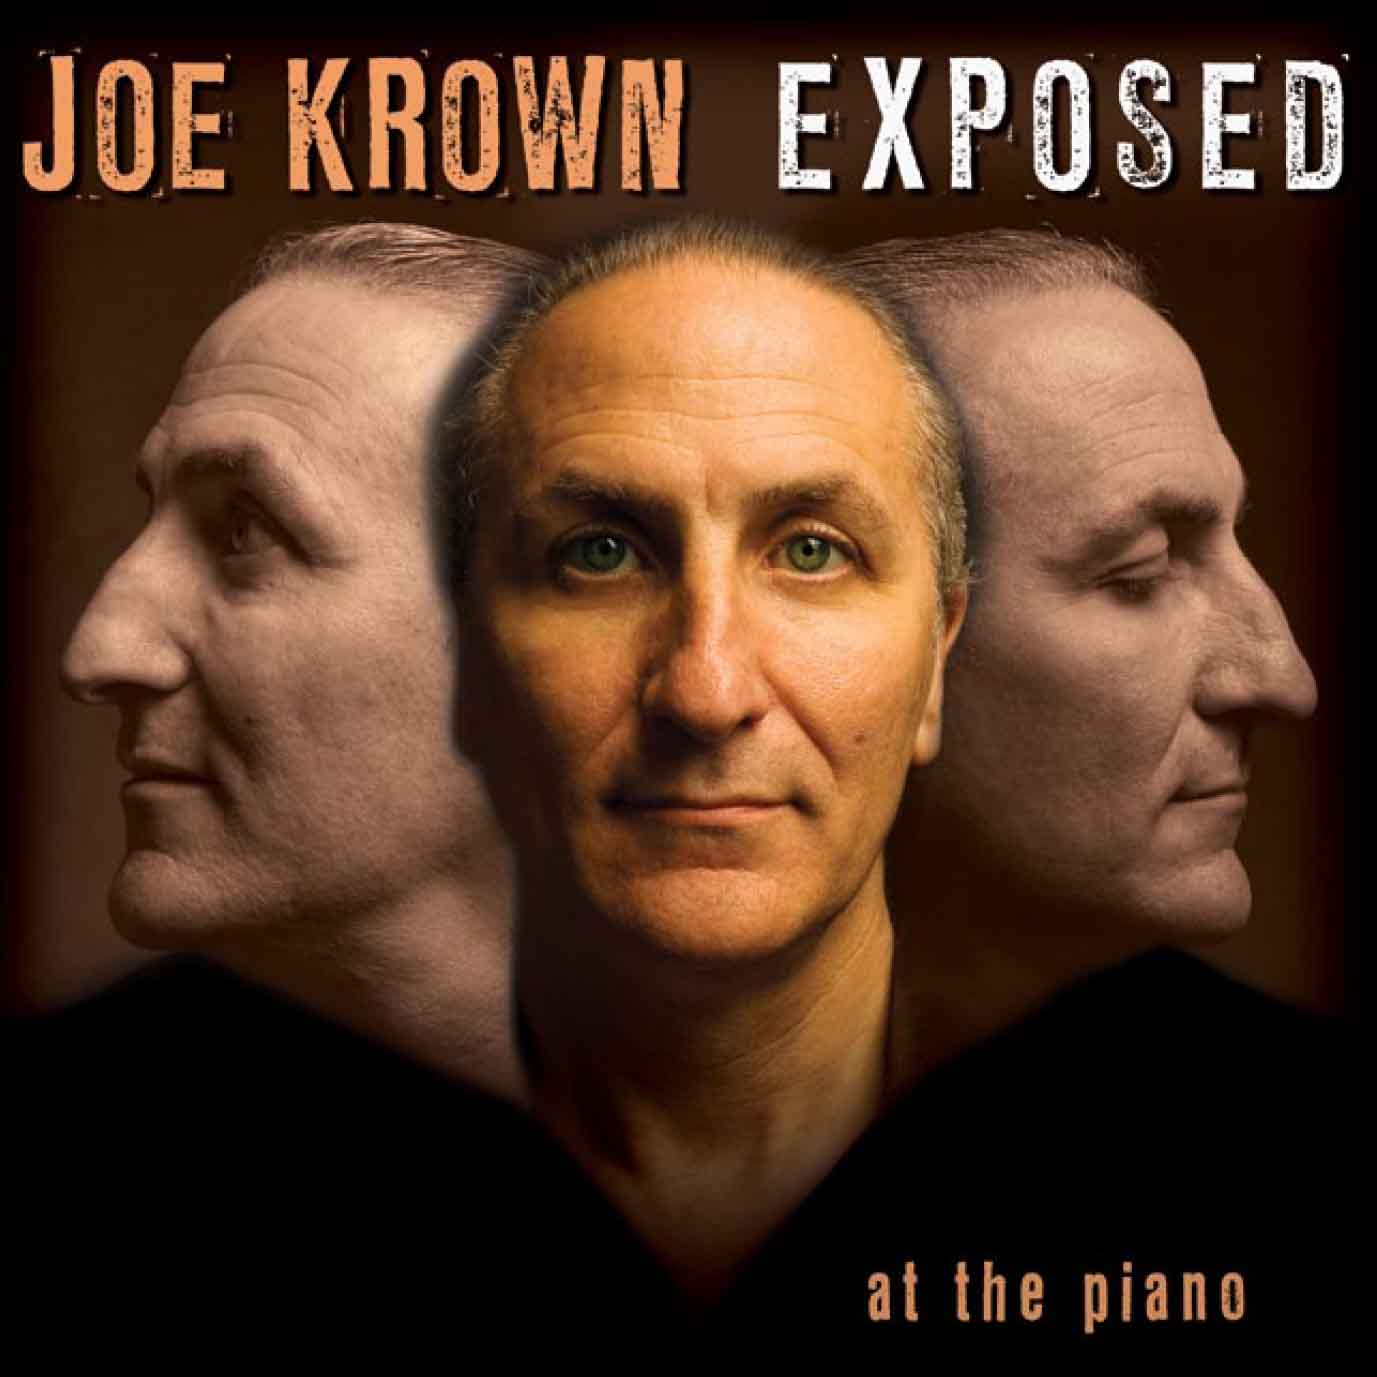 Joe Krown – Exposed